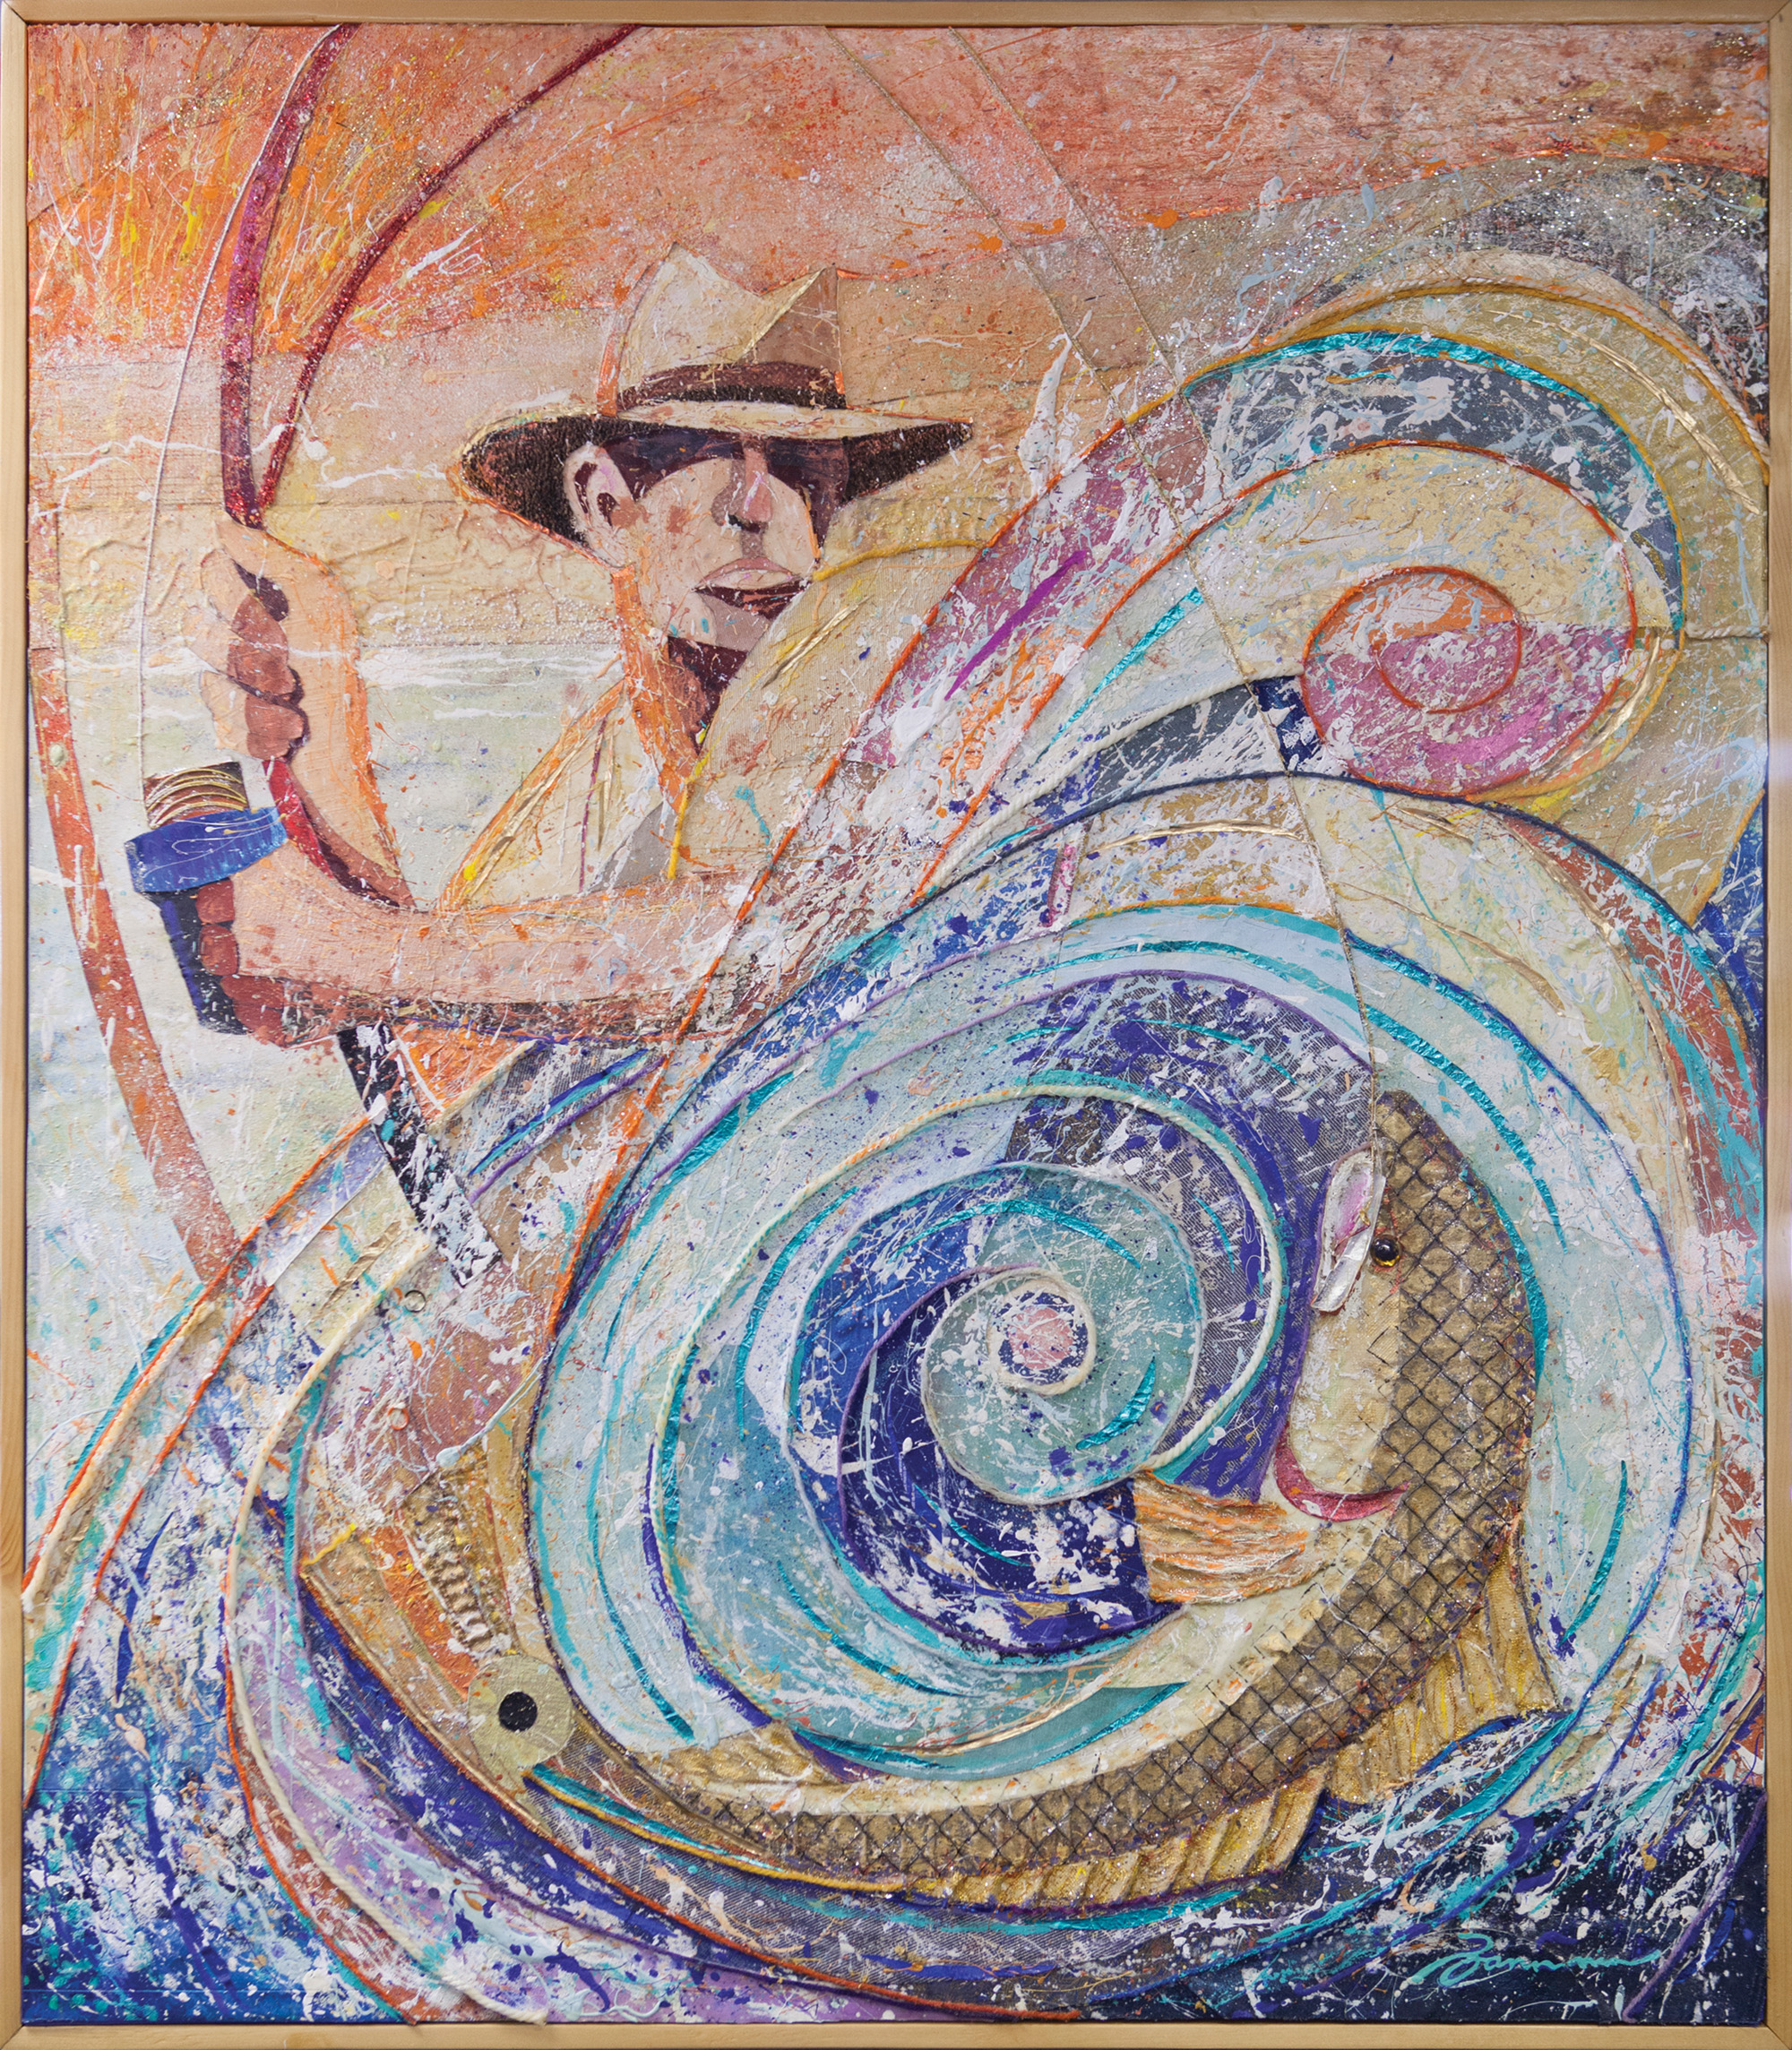 His annual trips to Lea Island, where he fishes for red drum, inspired the piece above.